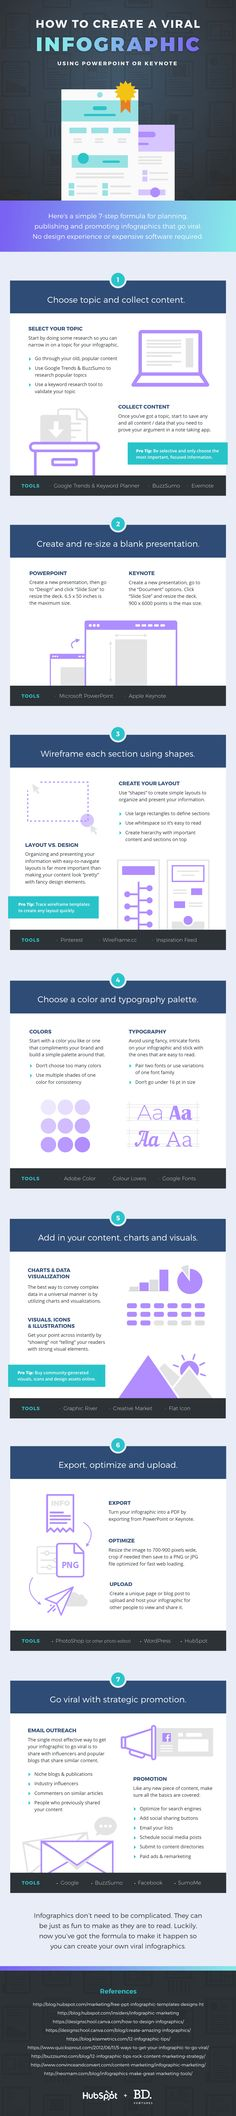 Want to learn how to create an infographic? In this in-depth guide and infographic I'll show you each step needed to create a viral infographic.